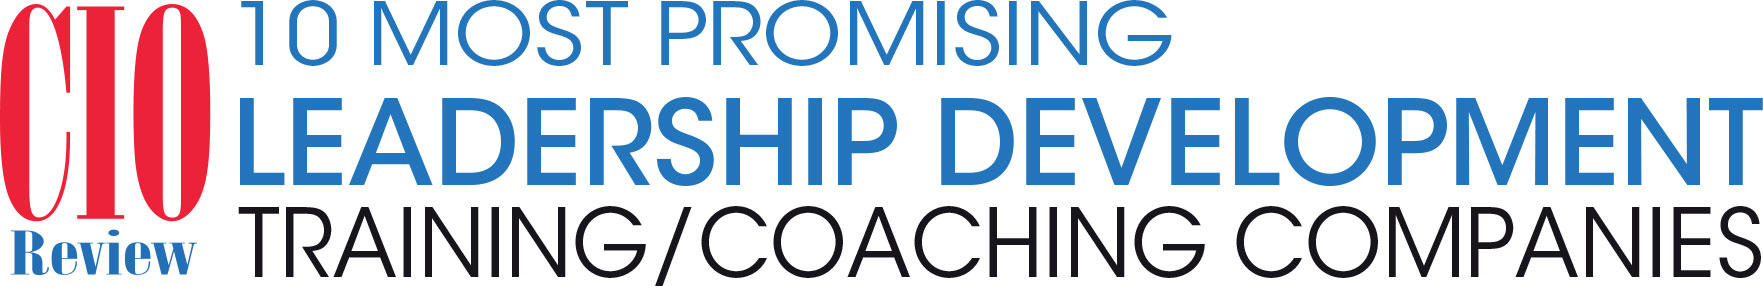 Top Leadership Development Training/Coaching Companies